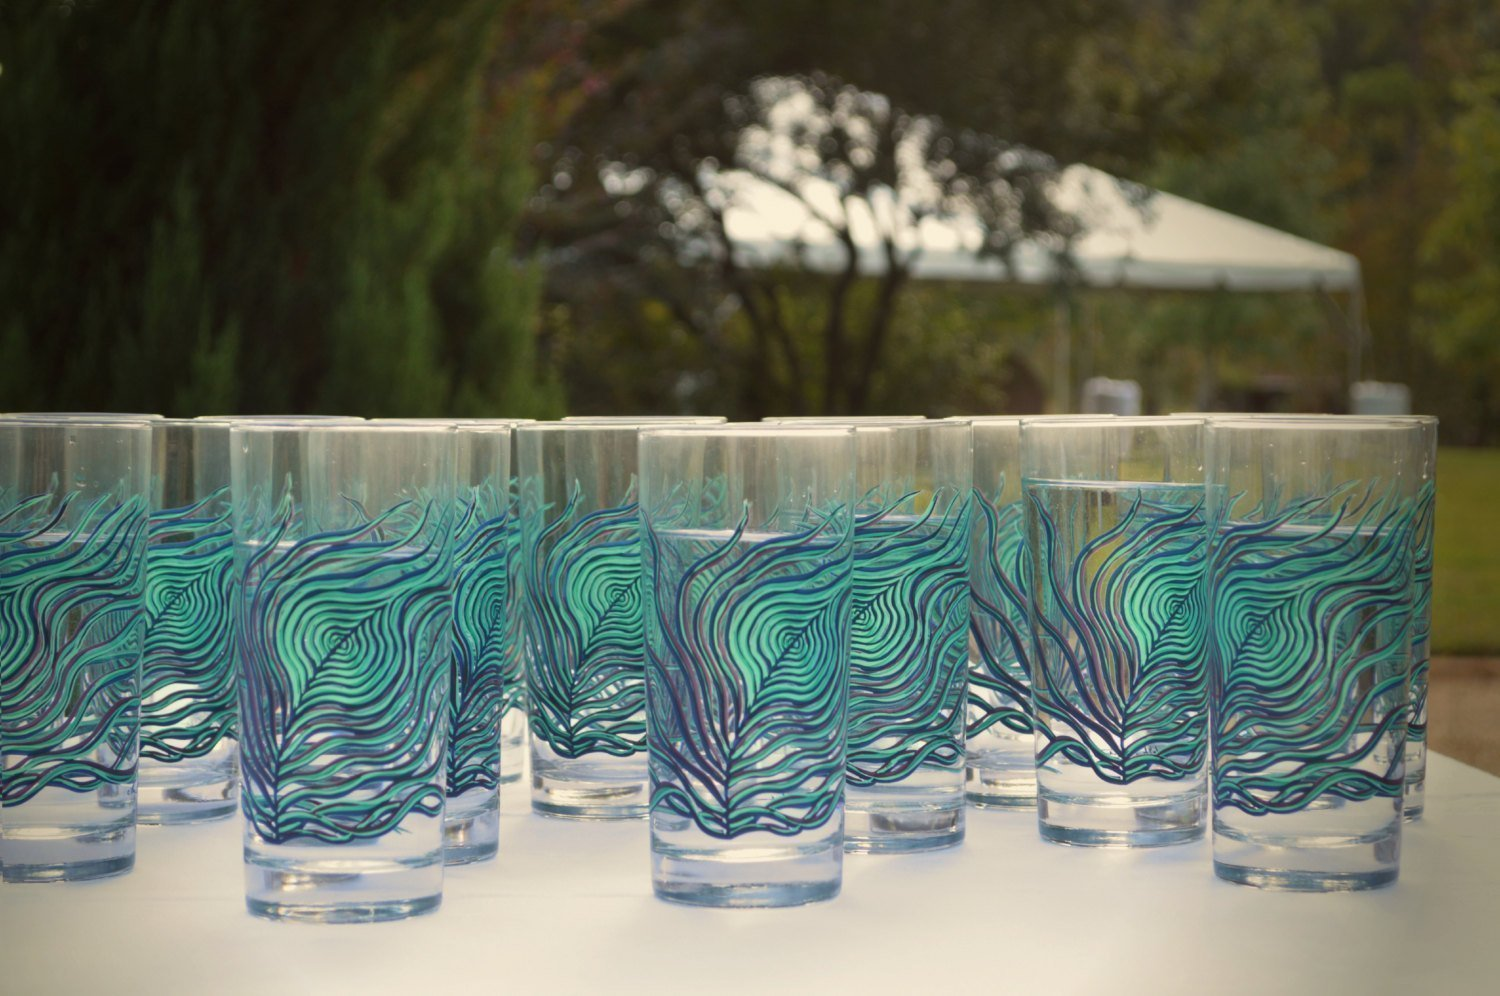 Peacock Feather Glassware - Set of 2 Hand Painted Glasses, M Gift for Her, Everyday Drinking Glasses